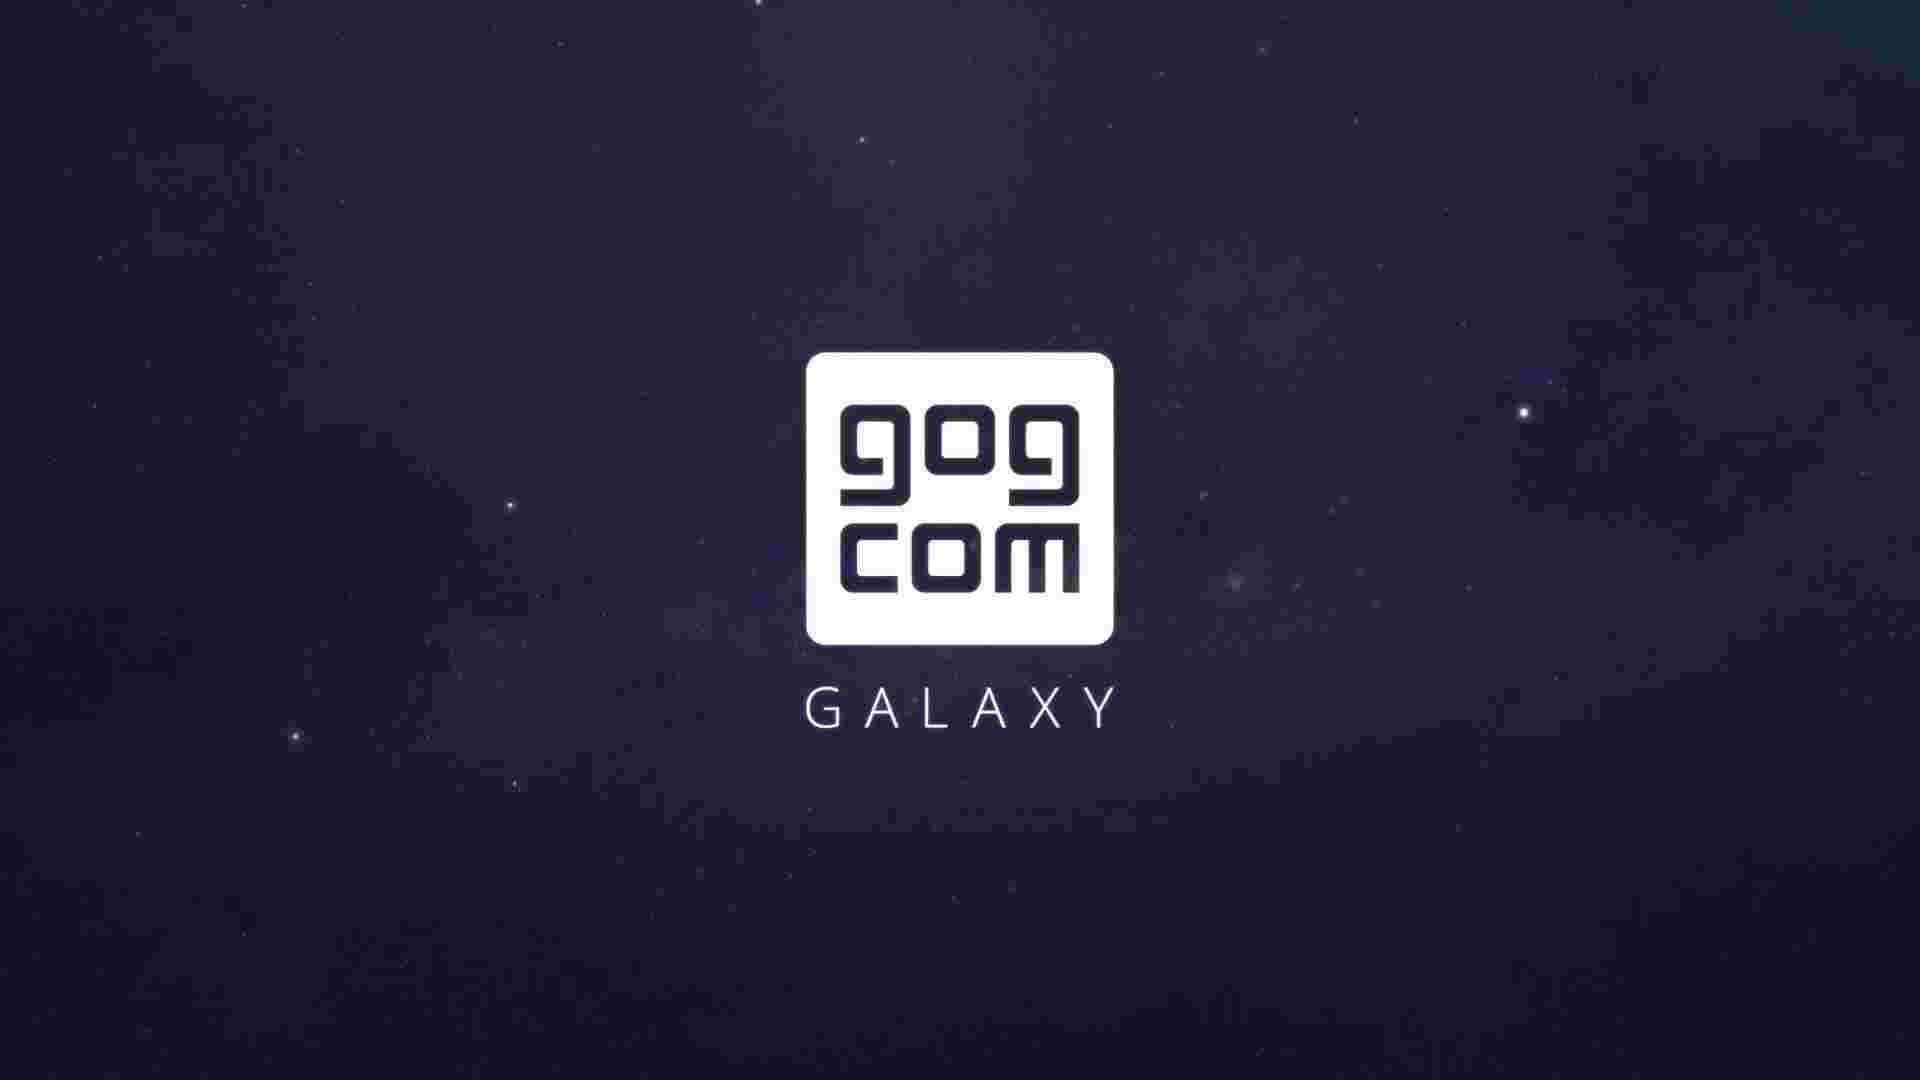 2014-06-13-09_16_30-GOG.com-Galaxy_-Introducing-a-DRM-Free-Online-Gaming-Platform-YouTube